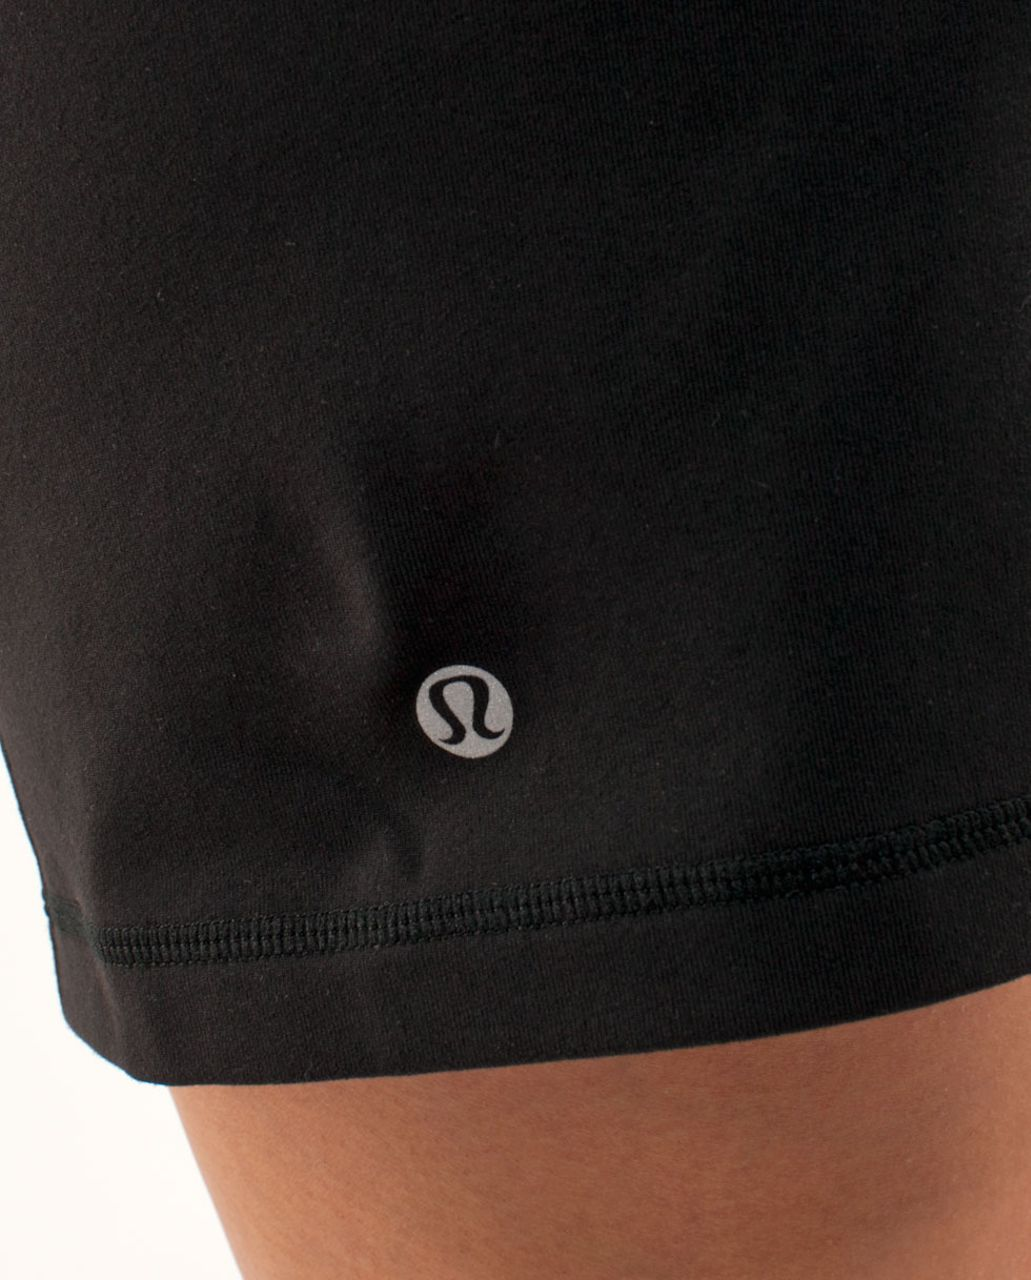 Lululemon Knock Out Short - Black /  Black Microstripe